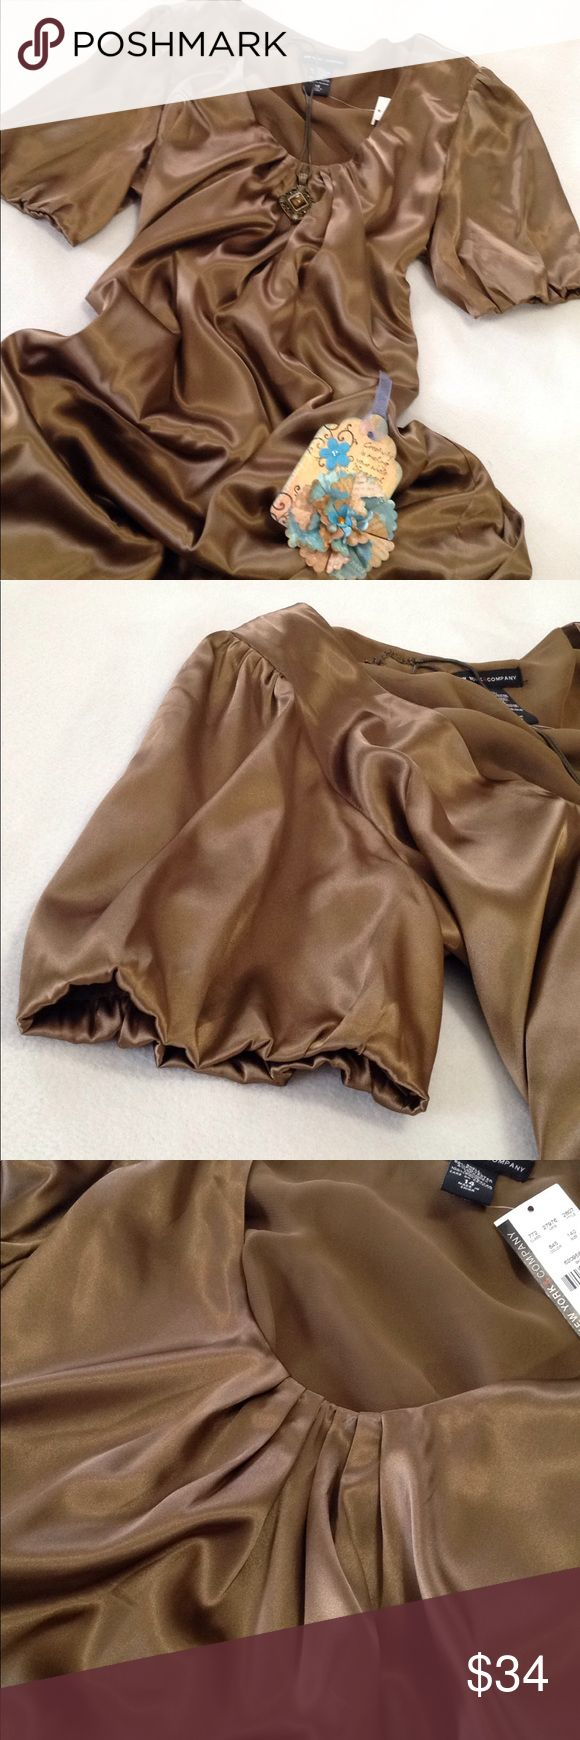 "New York & Company Dress Lined Bronze Shimmer 14 Gorgeous! Silky! Shimmery! This chocolate bronze shade is difficult to describe. The pleated neckline is the best match for true color.(photo 3) Sleeve hem(6"" across)is tufted but does not stretch. (Photo 2) Shell: 98% polyester, 2% spandex.  Lining: 100% polyester. (Photo 4) Machine wash cold. Laying flat: armpit to armpit 21 1/2"", shoulder to front hem 37"", armpit to sleeve hem 4"", across bottom hem 24 1/2"". **Note** props and jewelry not…"